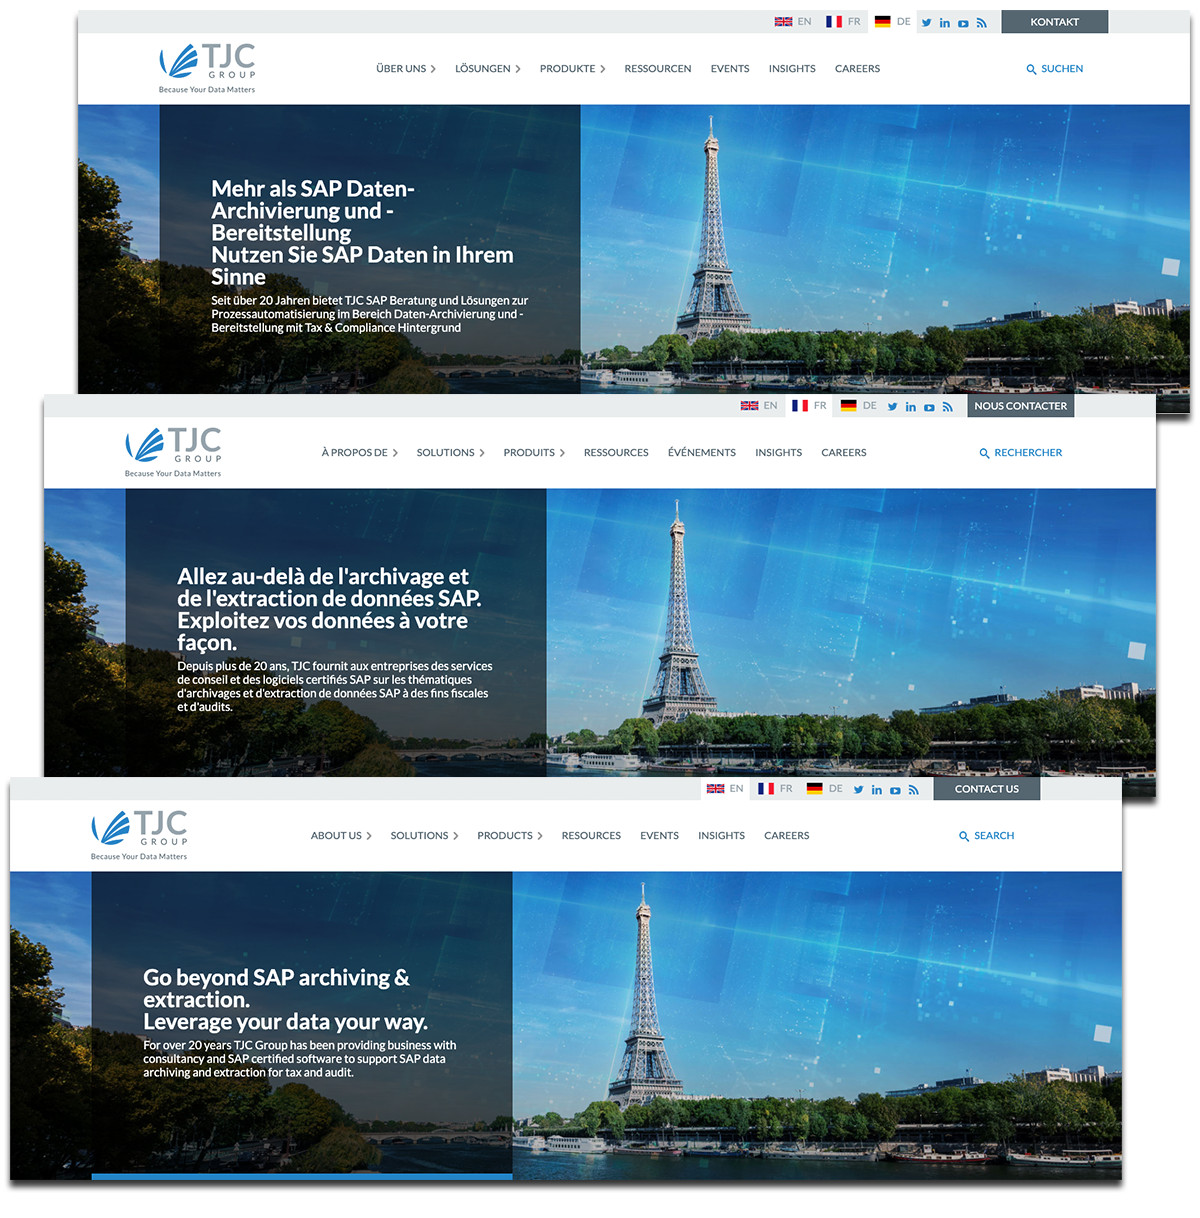 Multilingual website for TJC: Image of three languages together